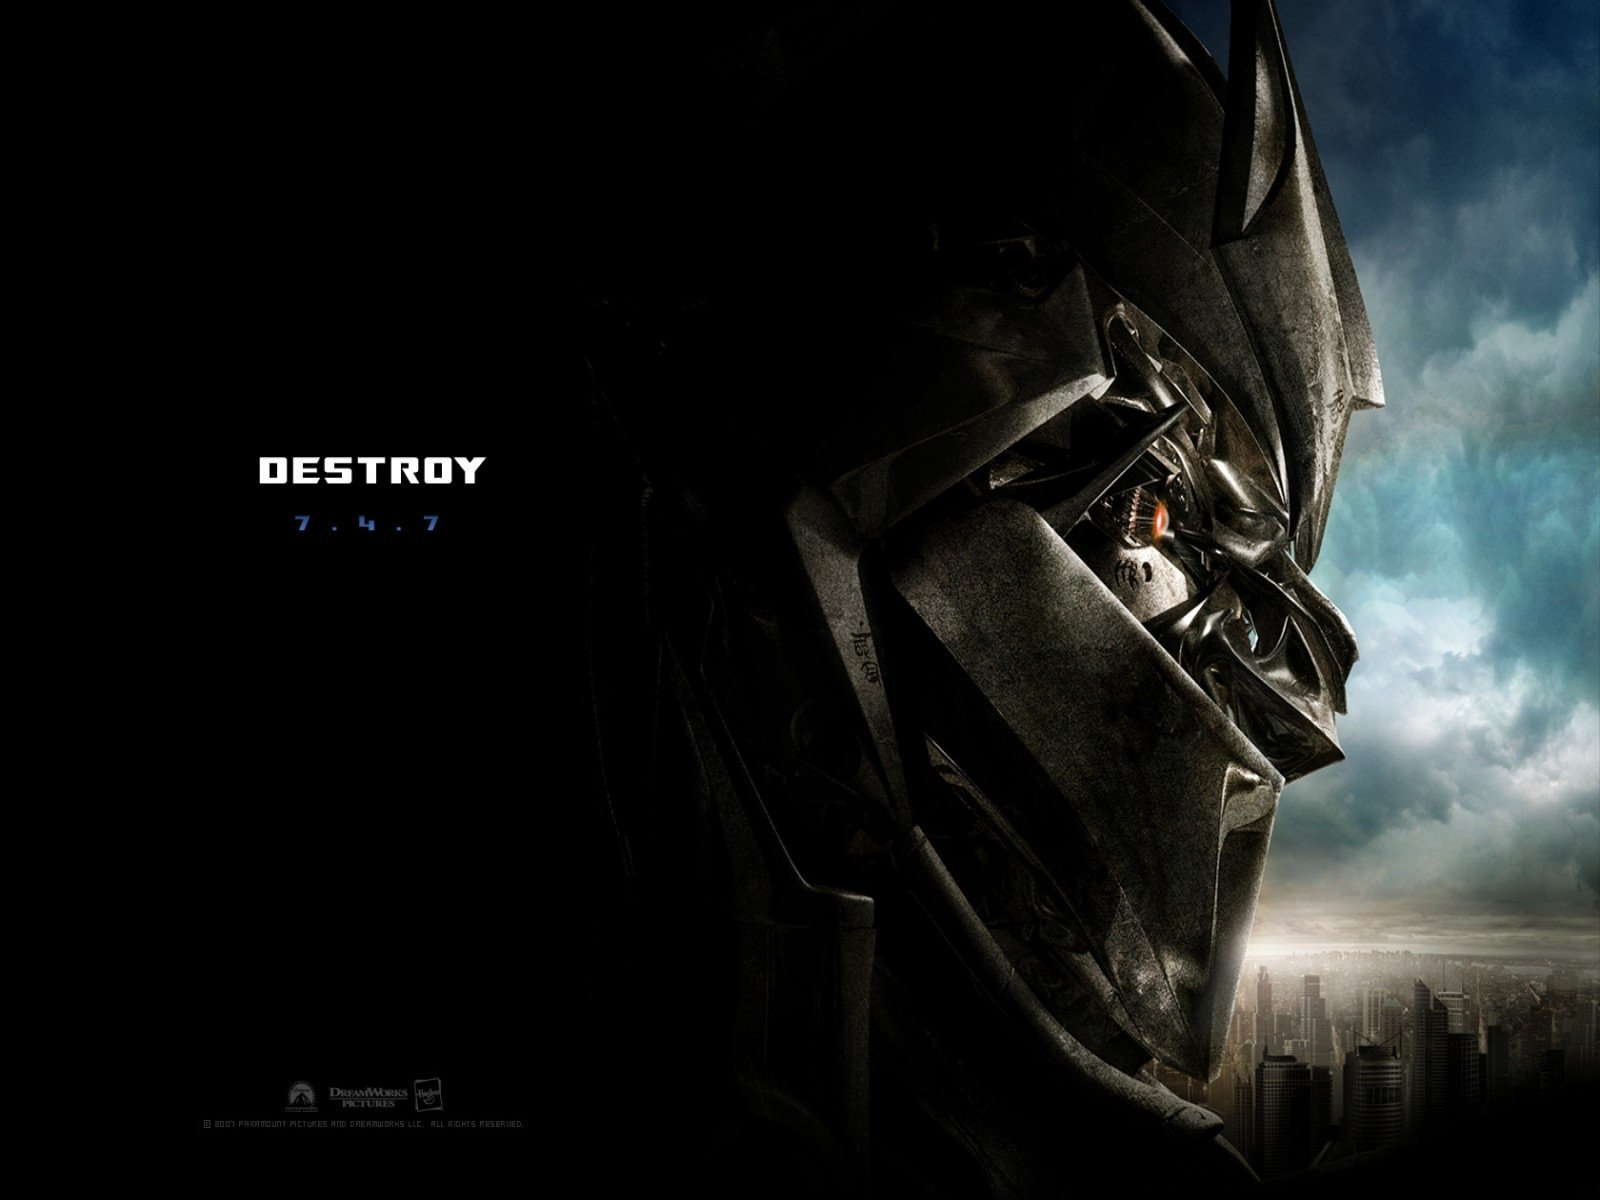 Wallpaper 'Destroy' del film Transformers